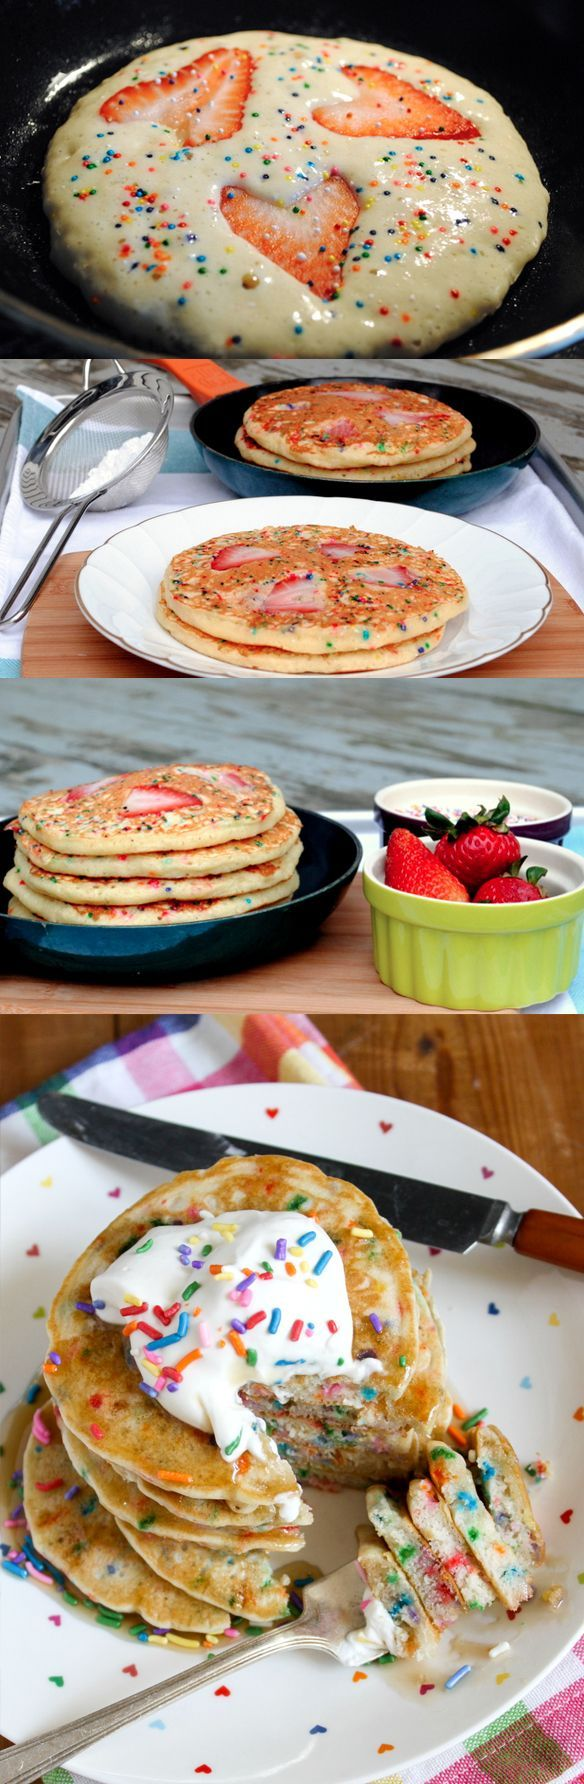 """This recipe is for buttermilk breakfast pancakes without a mix. Photos show how you can add fruit and whip cream. Sprinkles optional. Say """"Happy Birthday!"""" or celebrate a special occasion with this breakfast."""